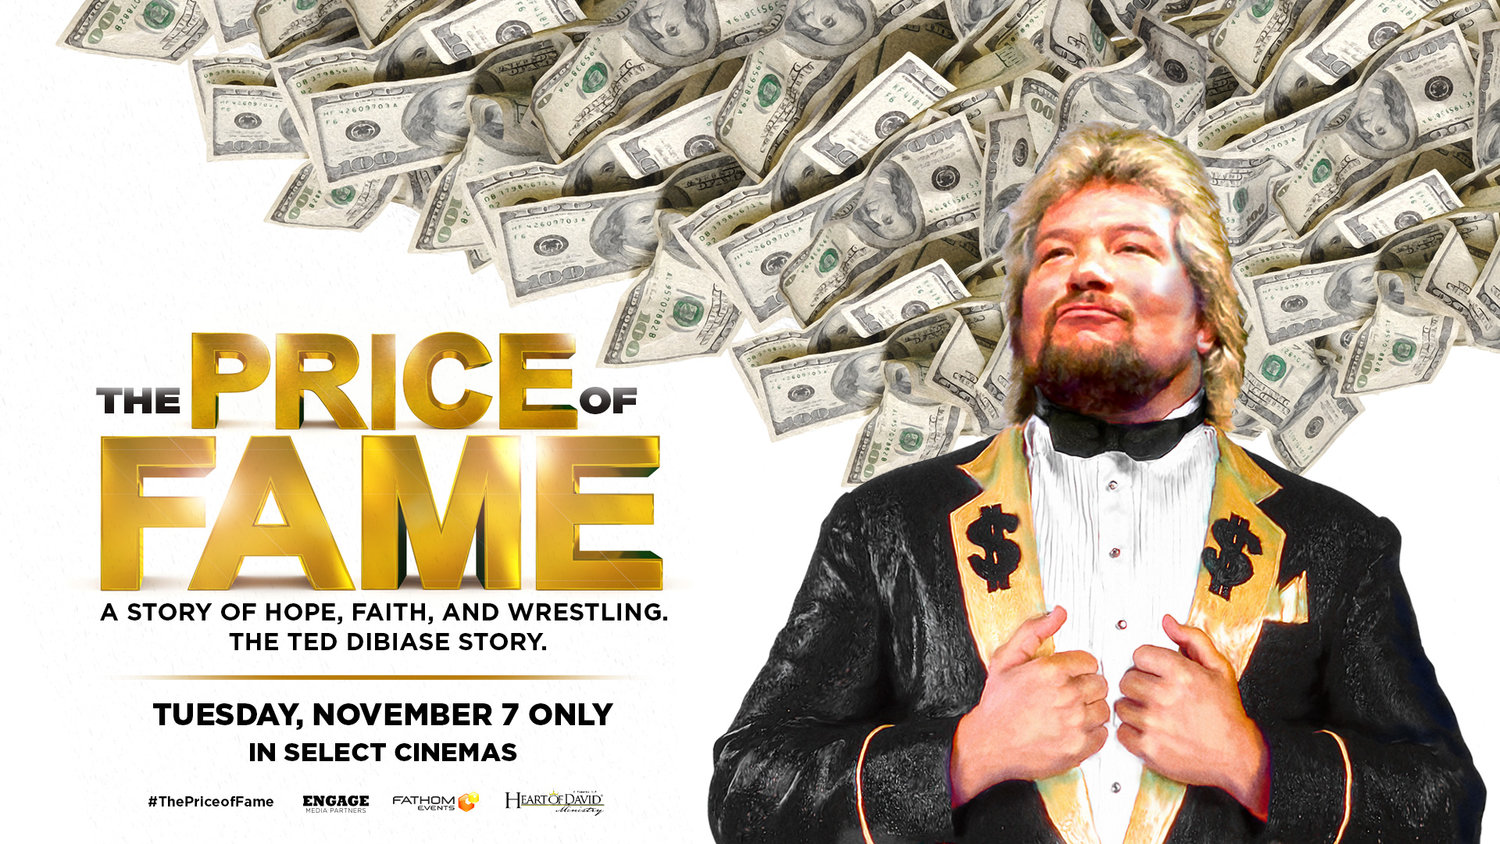 Review Of The Price Of Fame